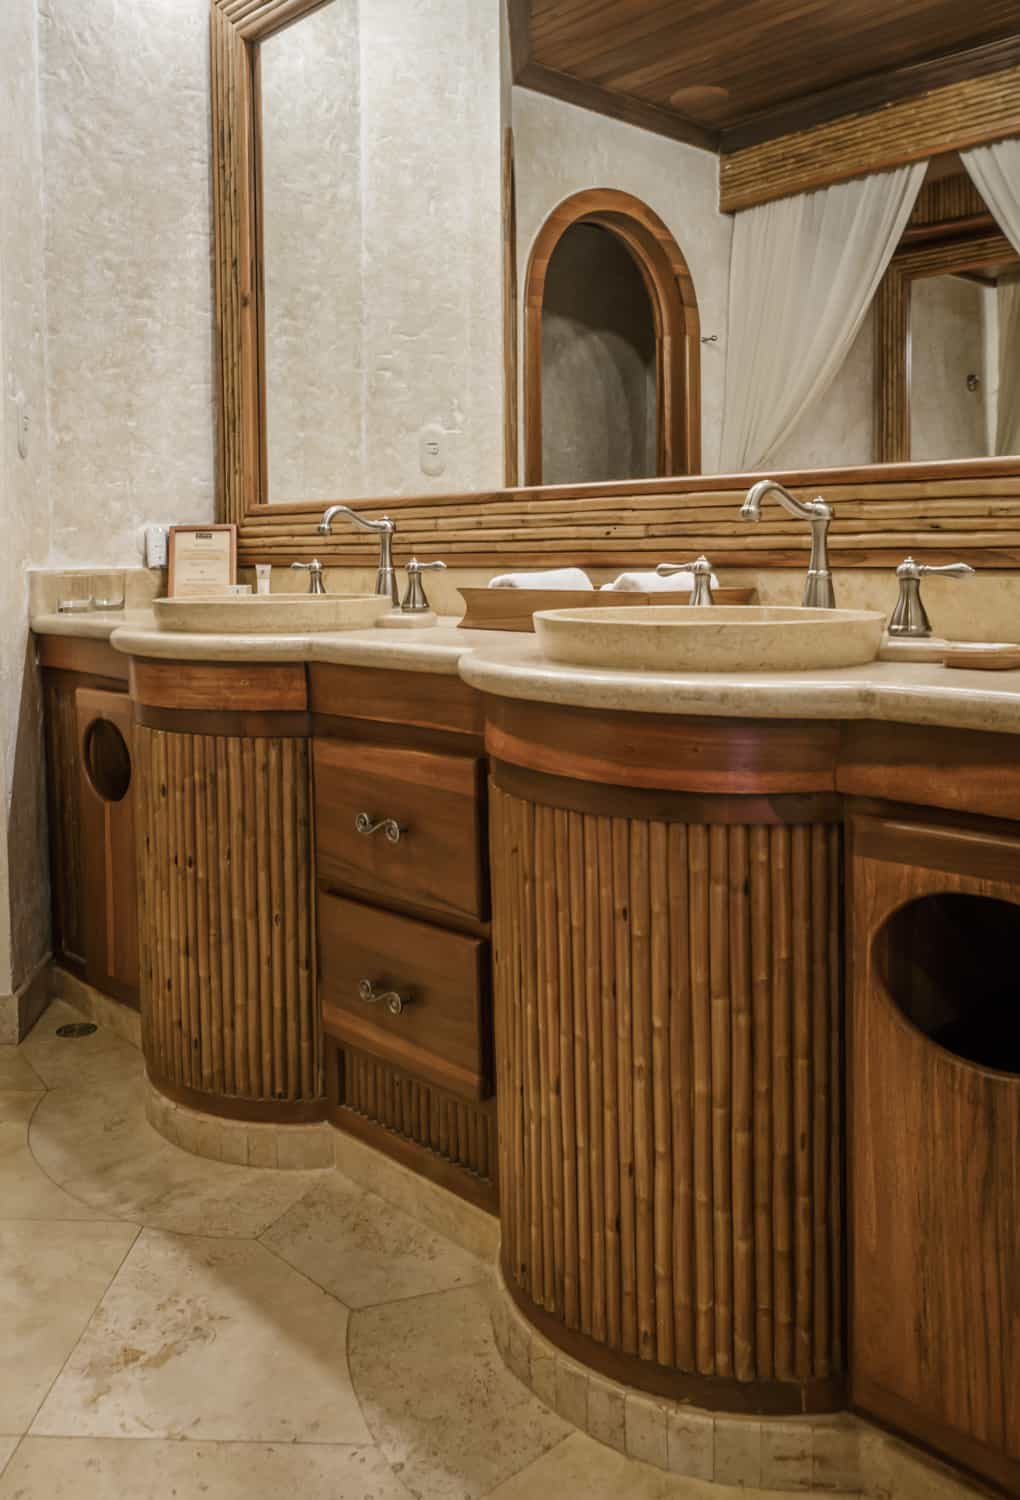 Bathroom vanity with natural stone counter and dual sinks with large mirror.